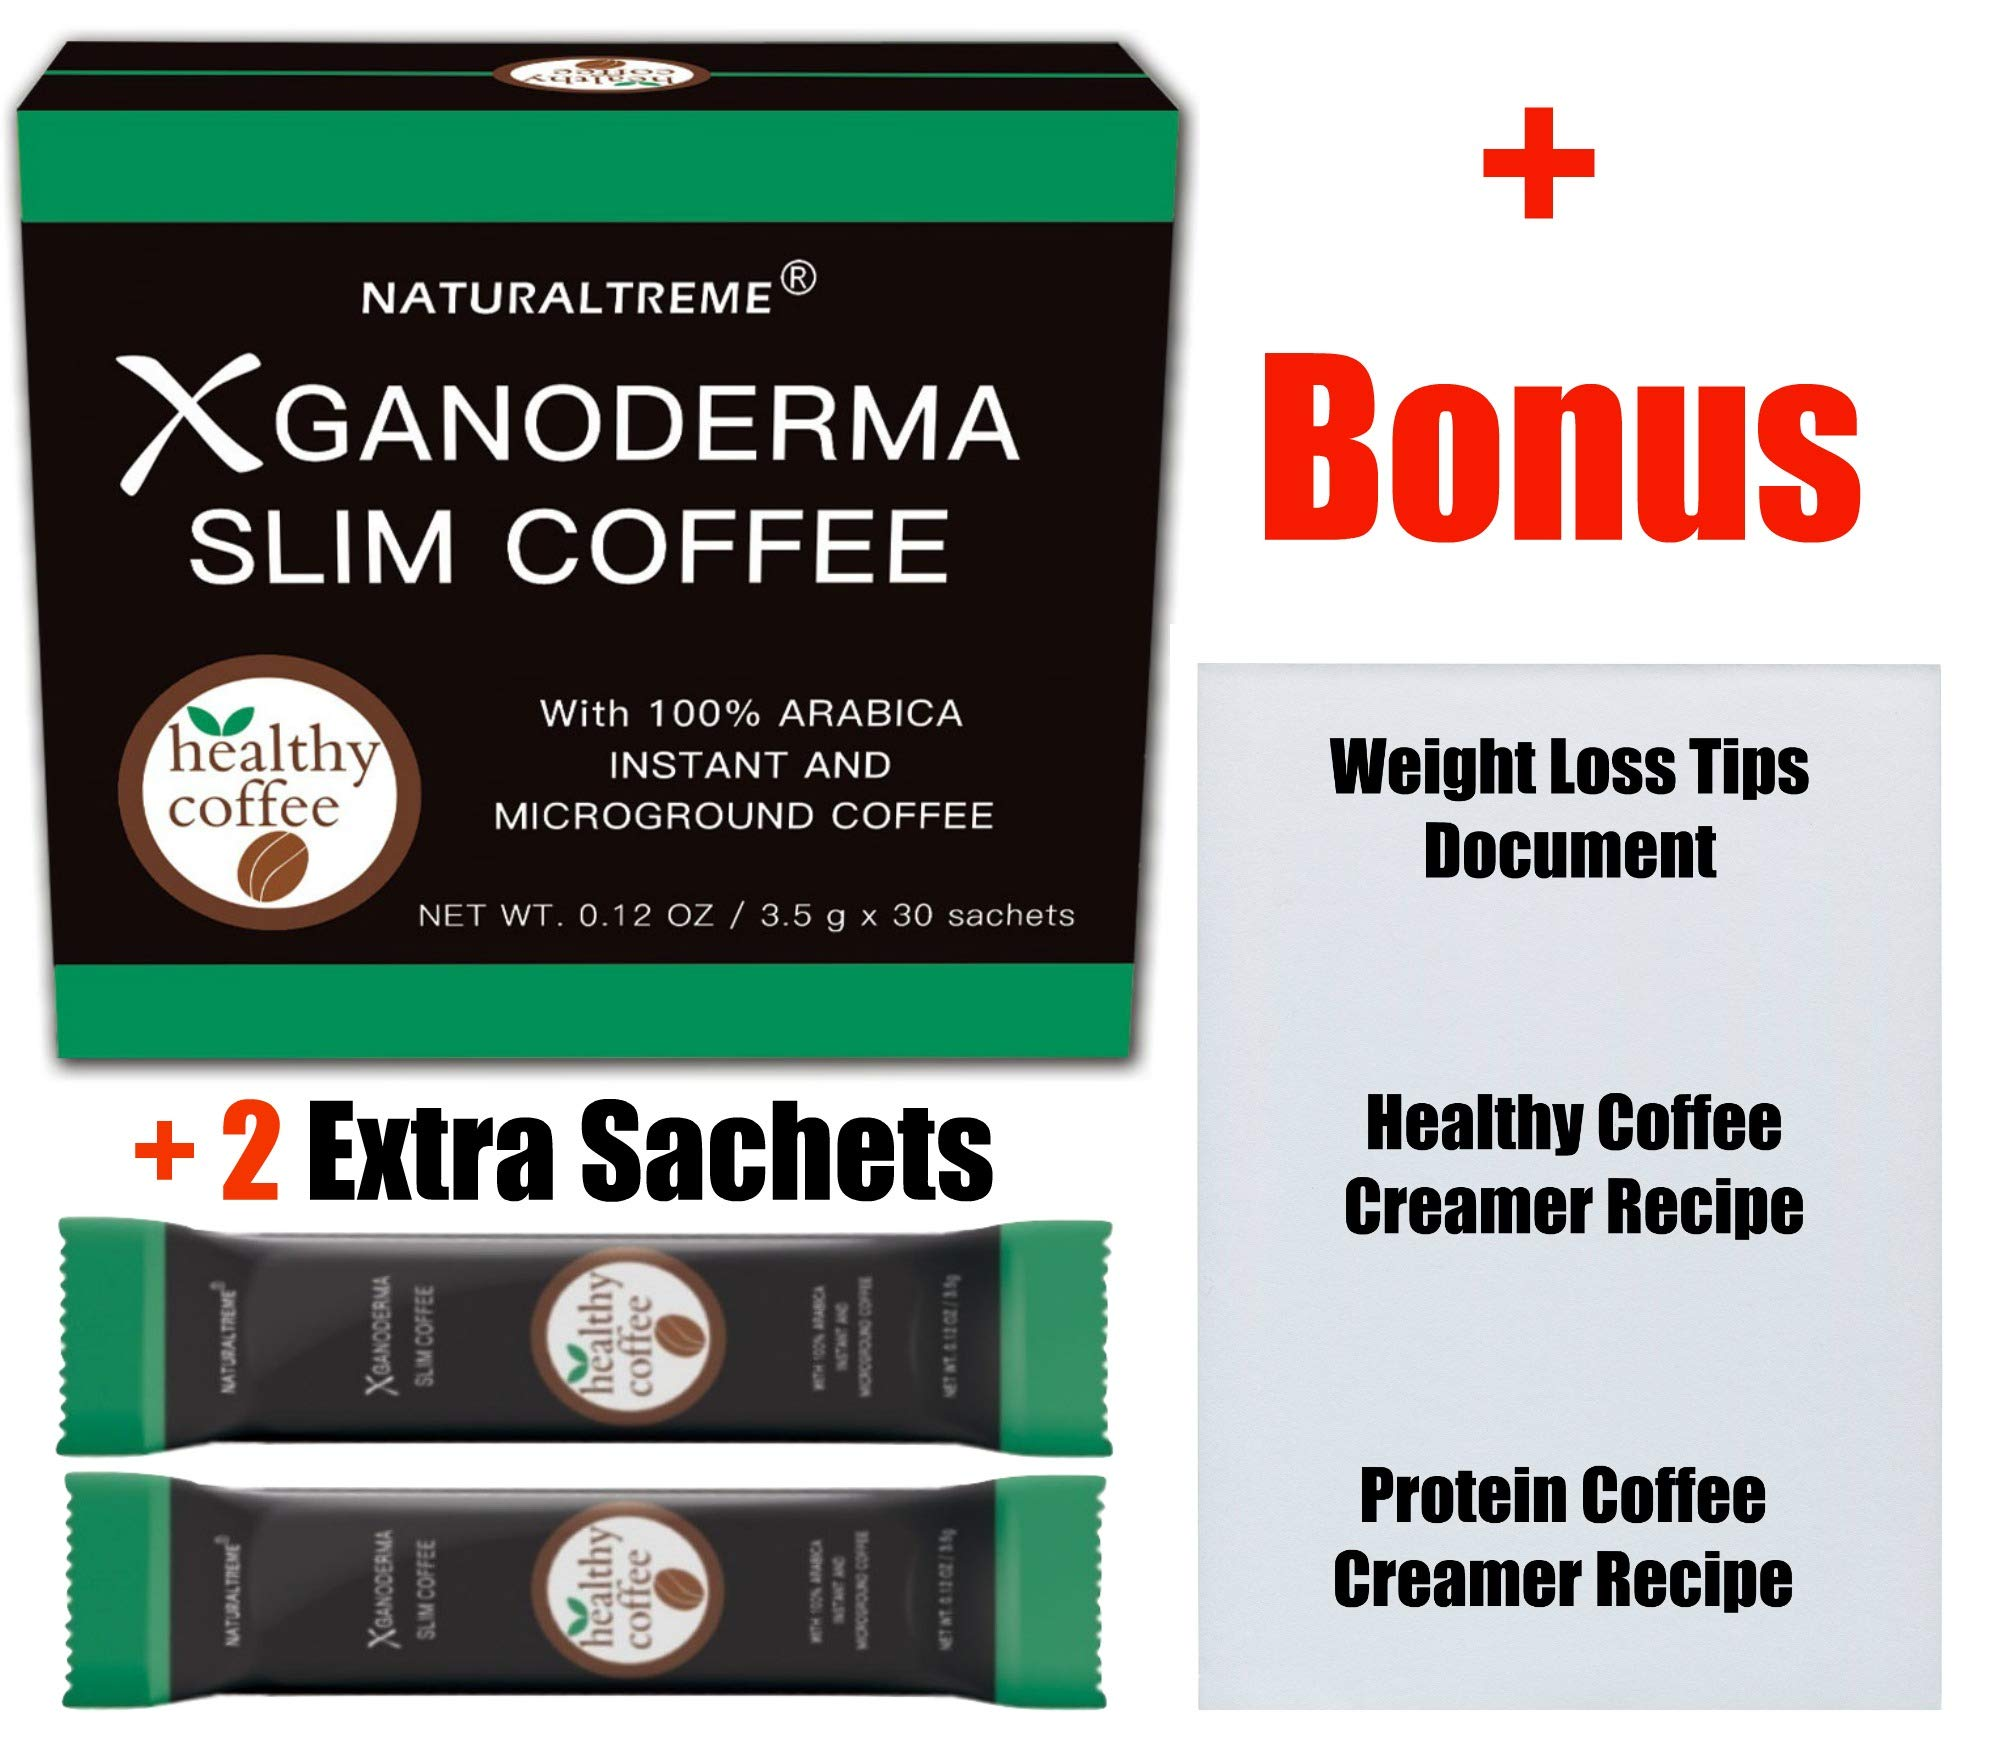 Slimming Instant Coffee Weight Loss & Detox Blend! 100% All Natural Ingredients! Appetite Suppressant! 30 Day Supply by NATURALTREME